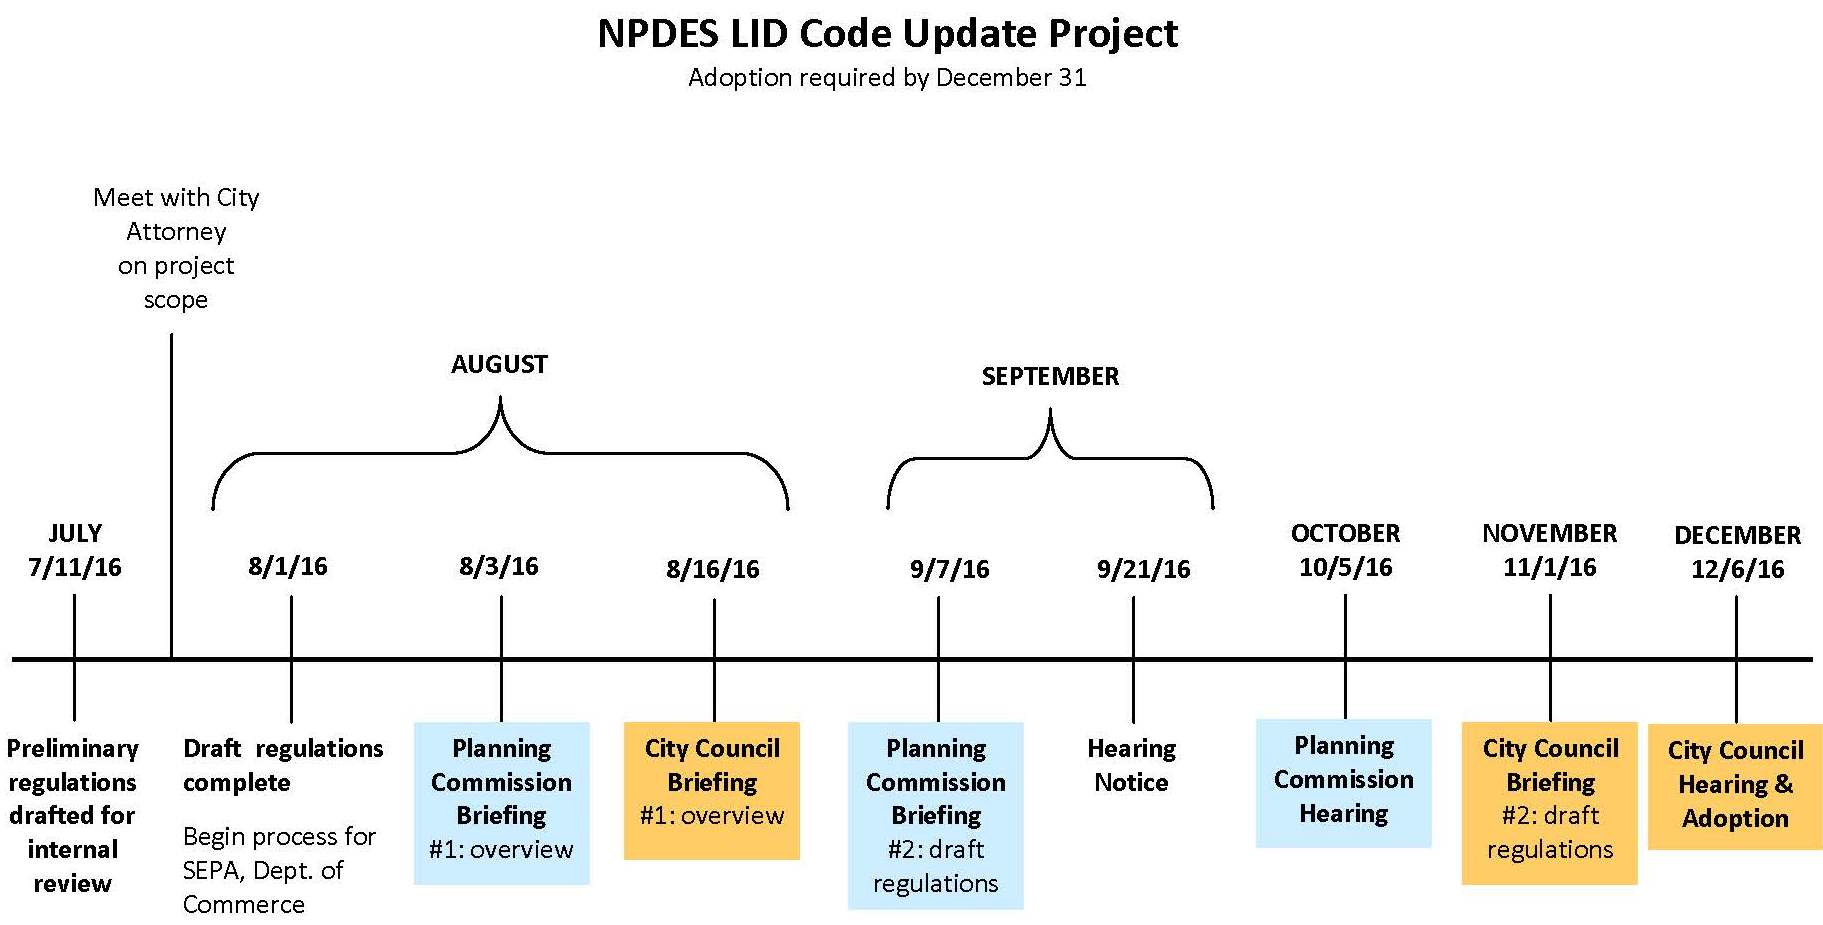 NPDES Project Timeline